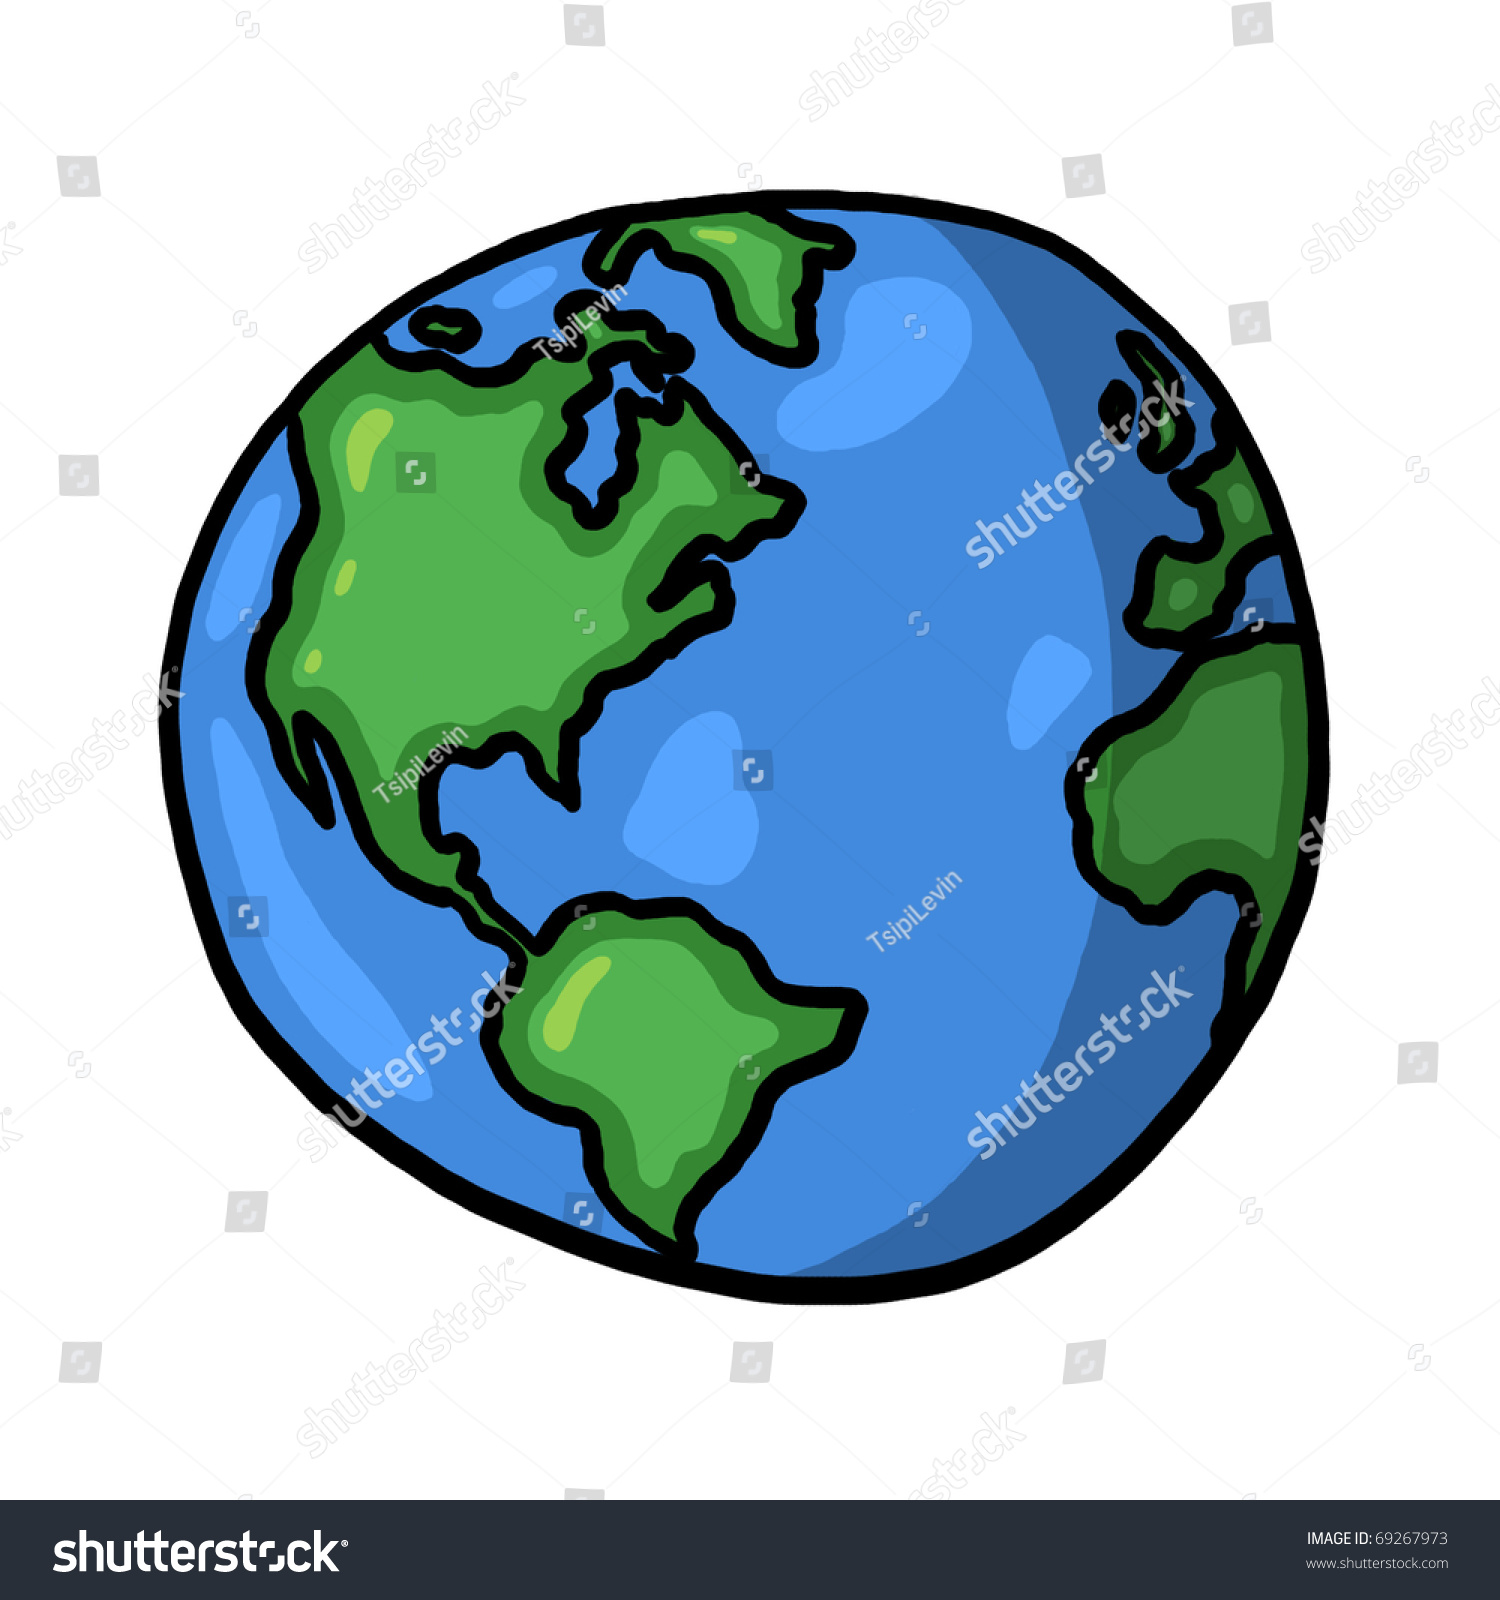 world illustration planet earth freehand drawing stock illustration